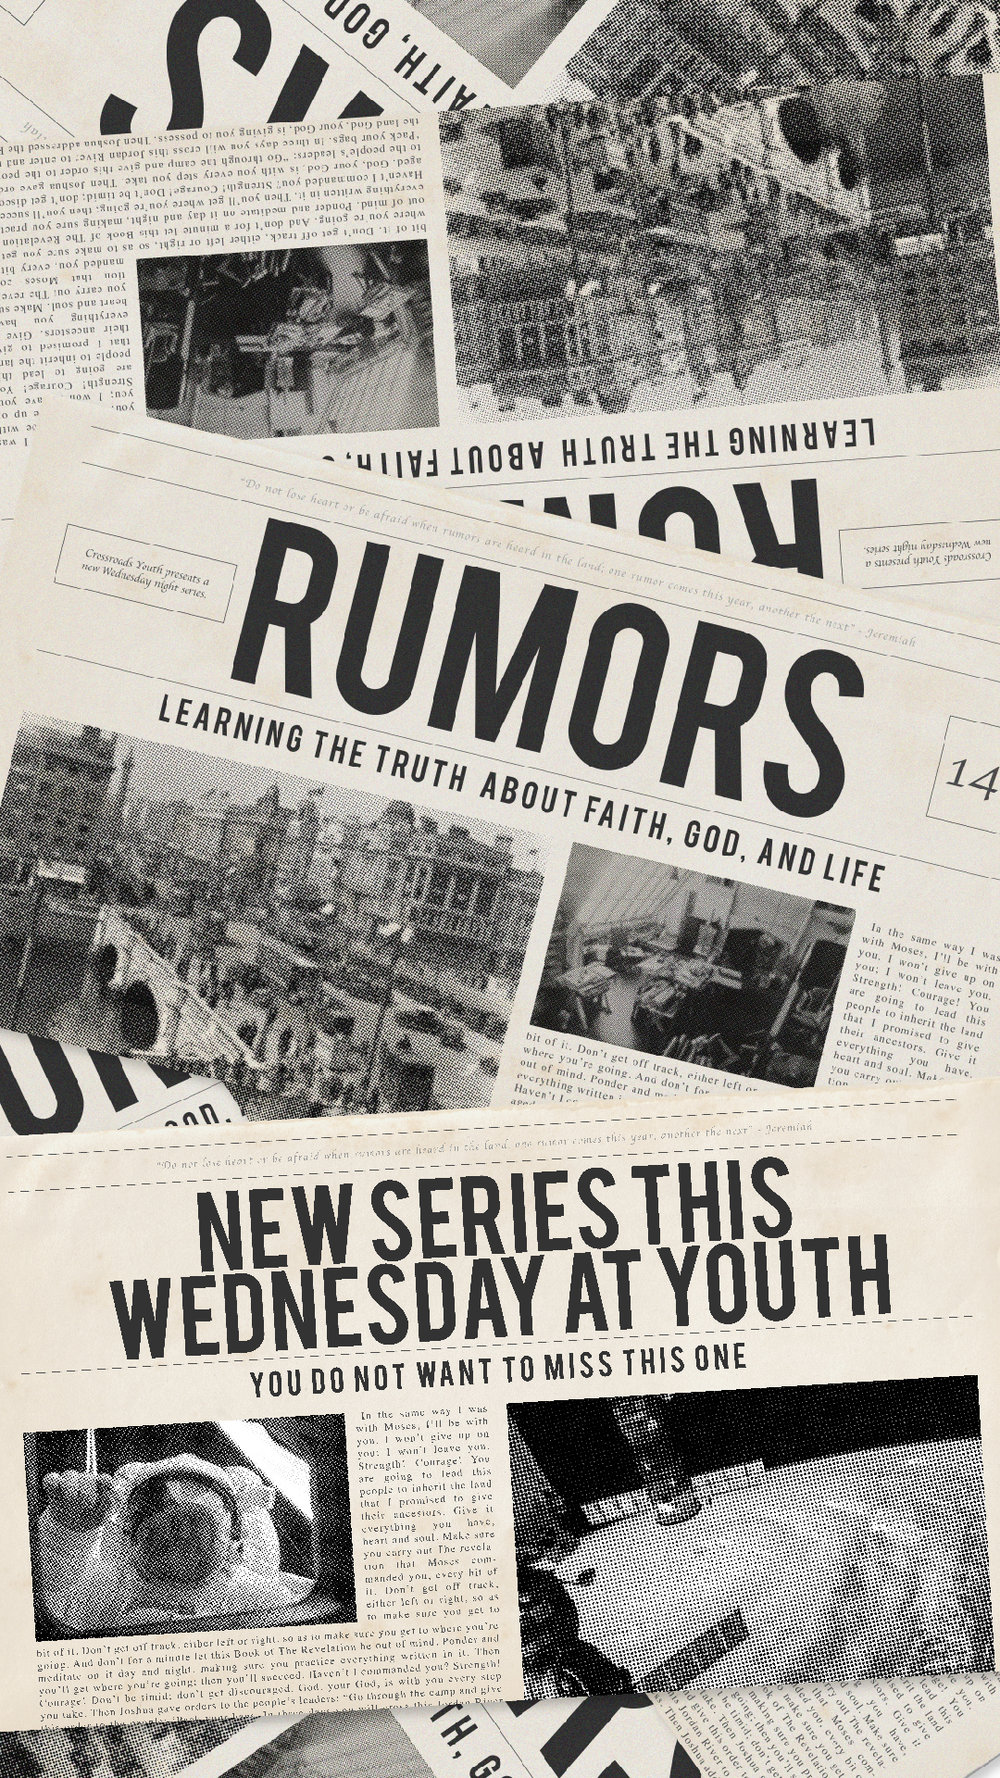 Rumors Insta Story Announcement.jpg